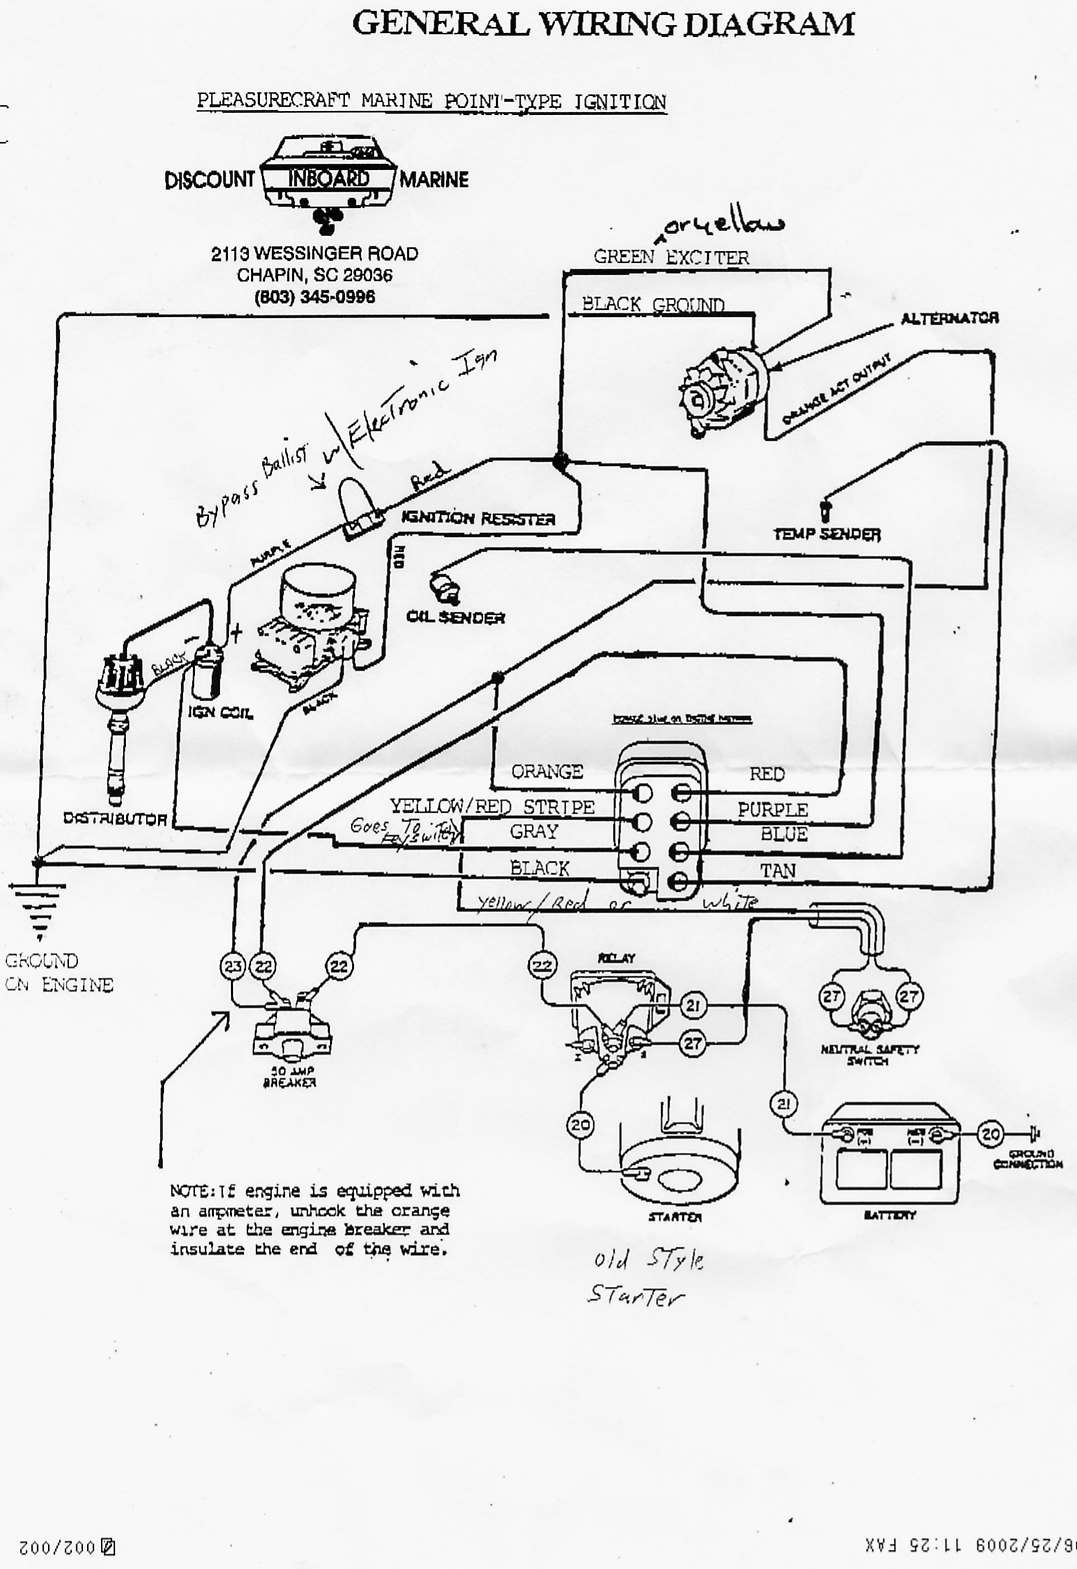 Ignition Switch - 82 Ski Nautique - Correctcraftfan Forums - Boat Ignition Switch Wiring Diagram